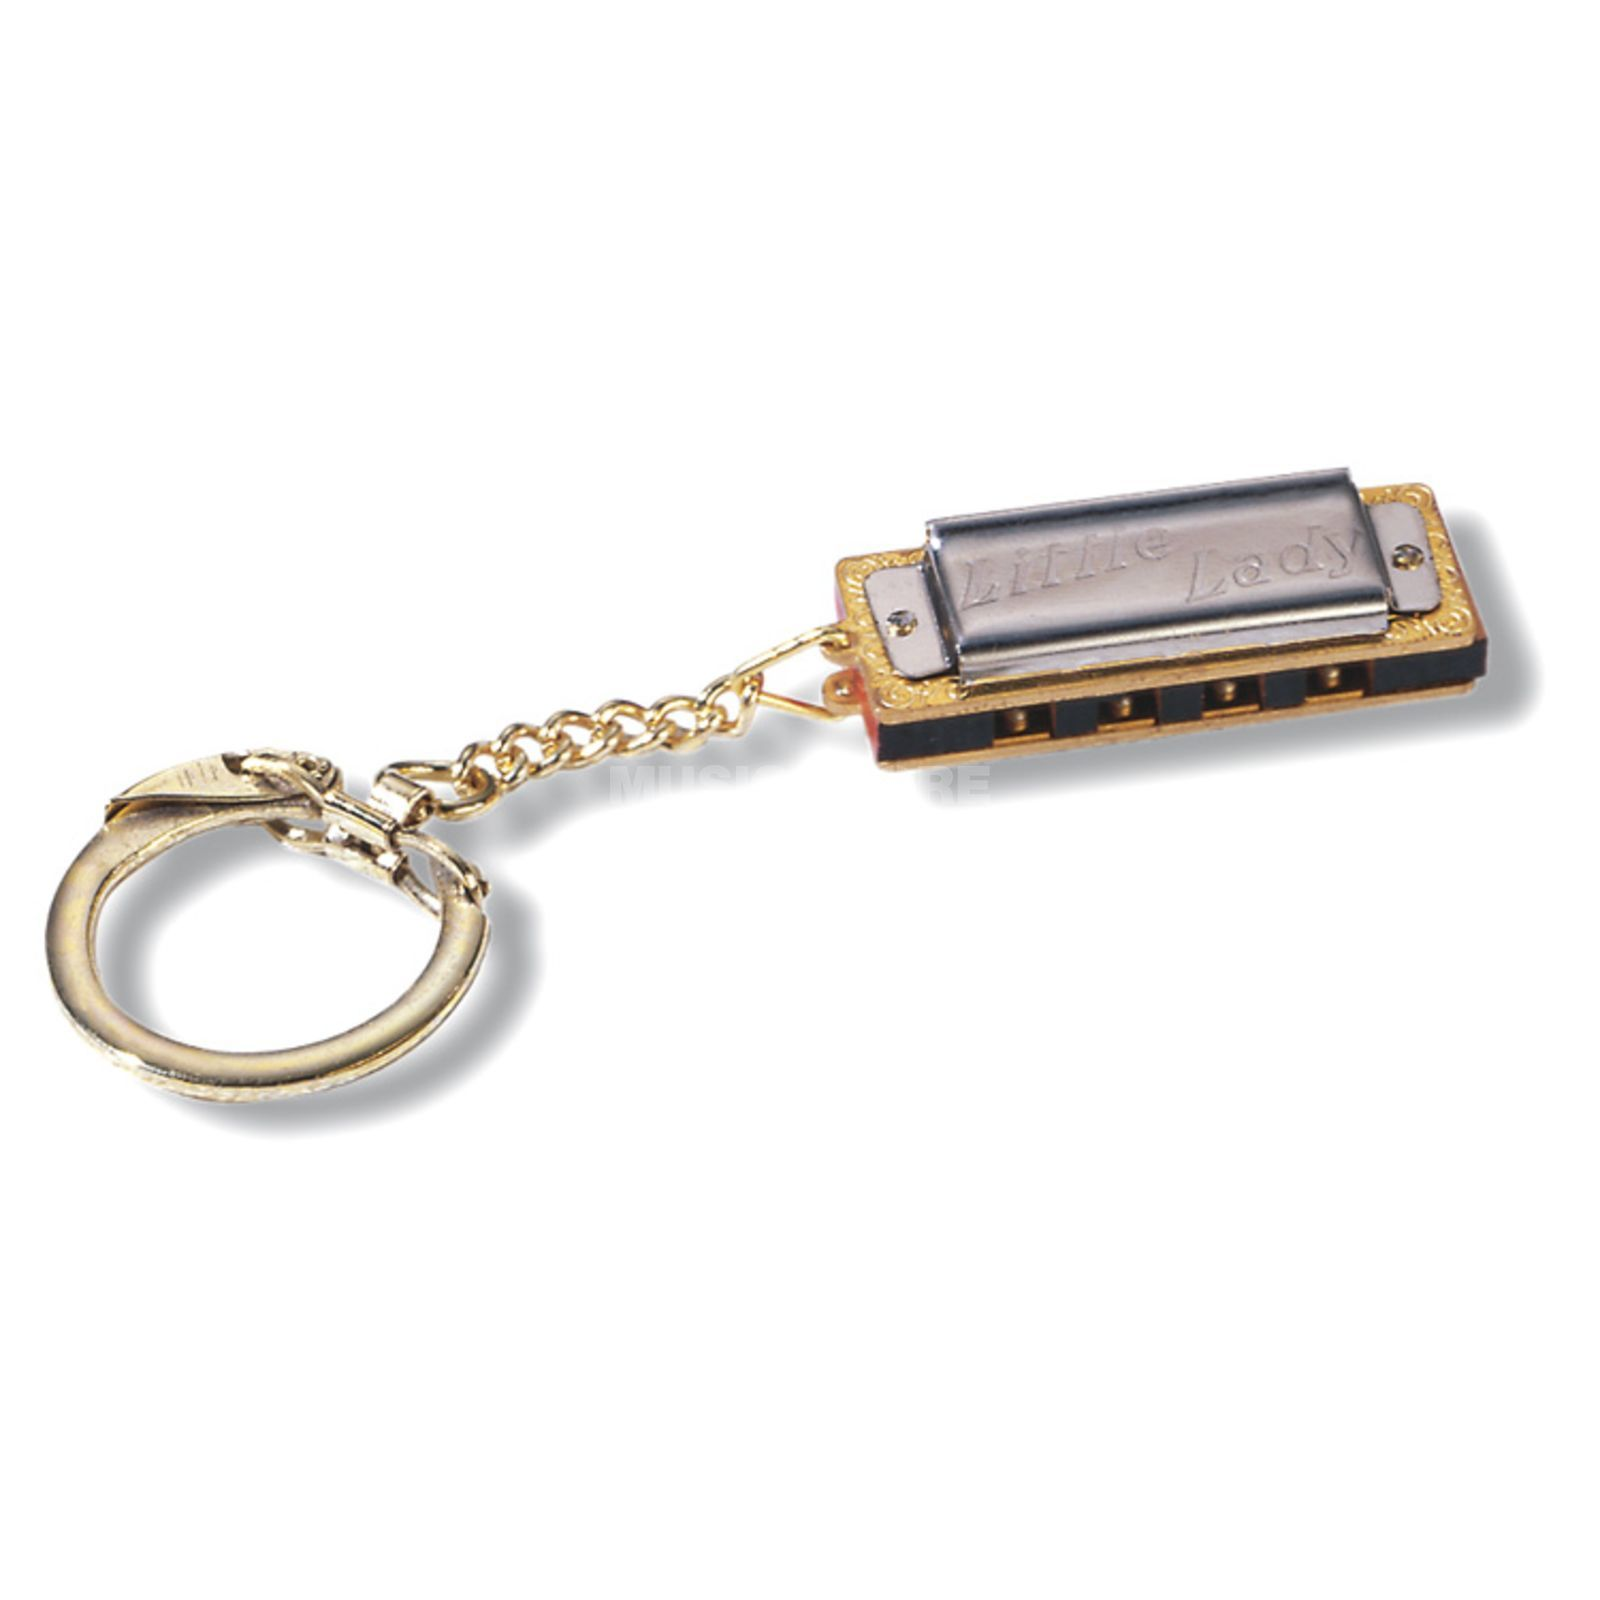 Hohner Little Lady with key-ring harmonica C Major, ca. 3.5cm Image du produit